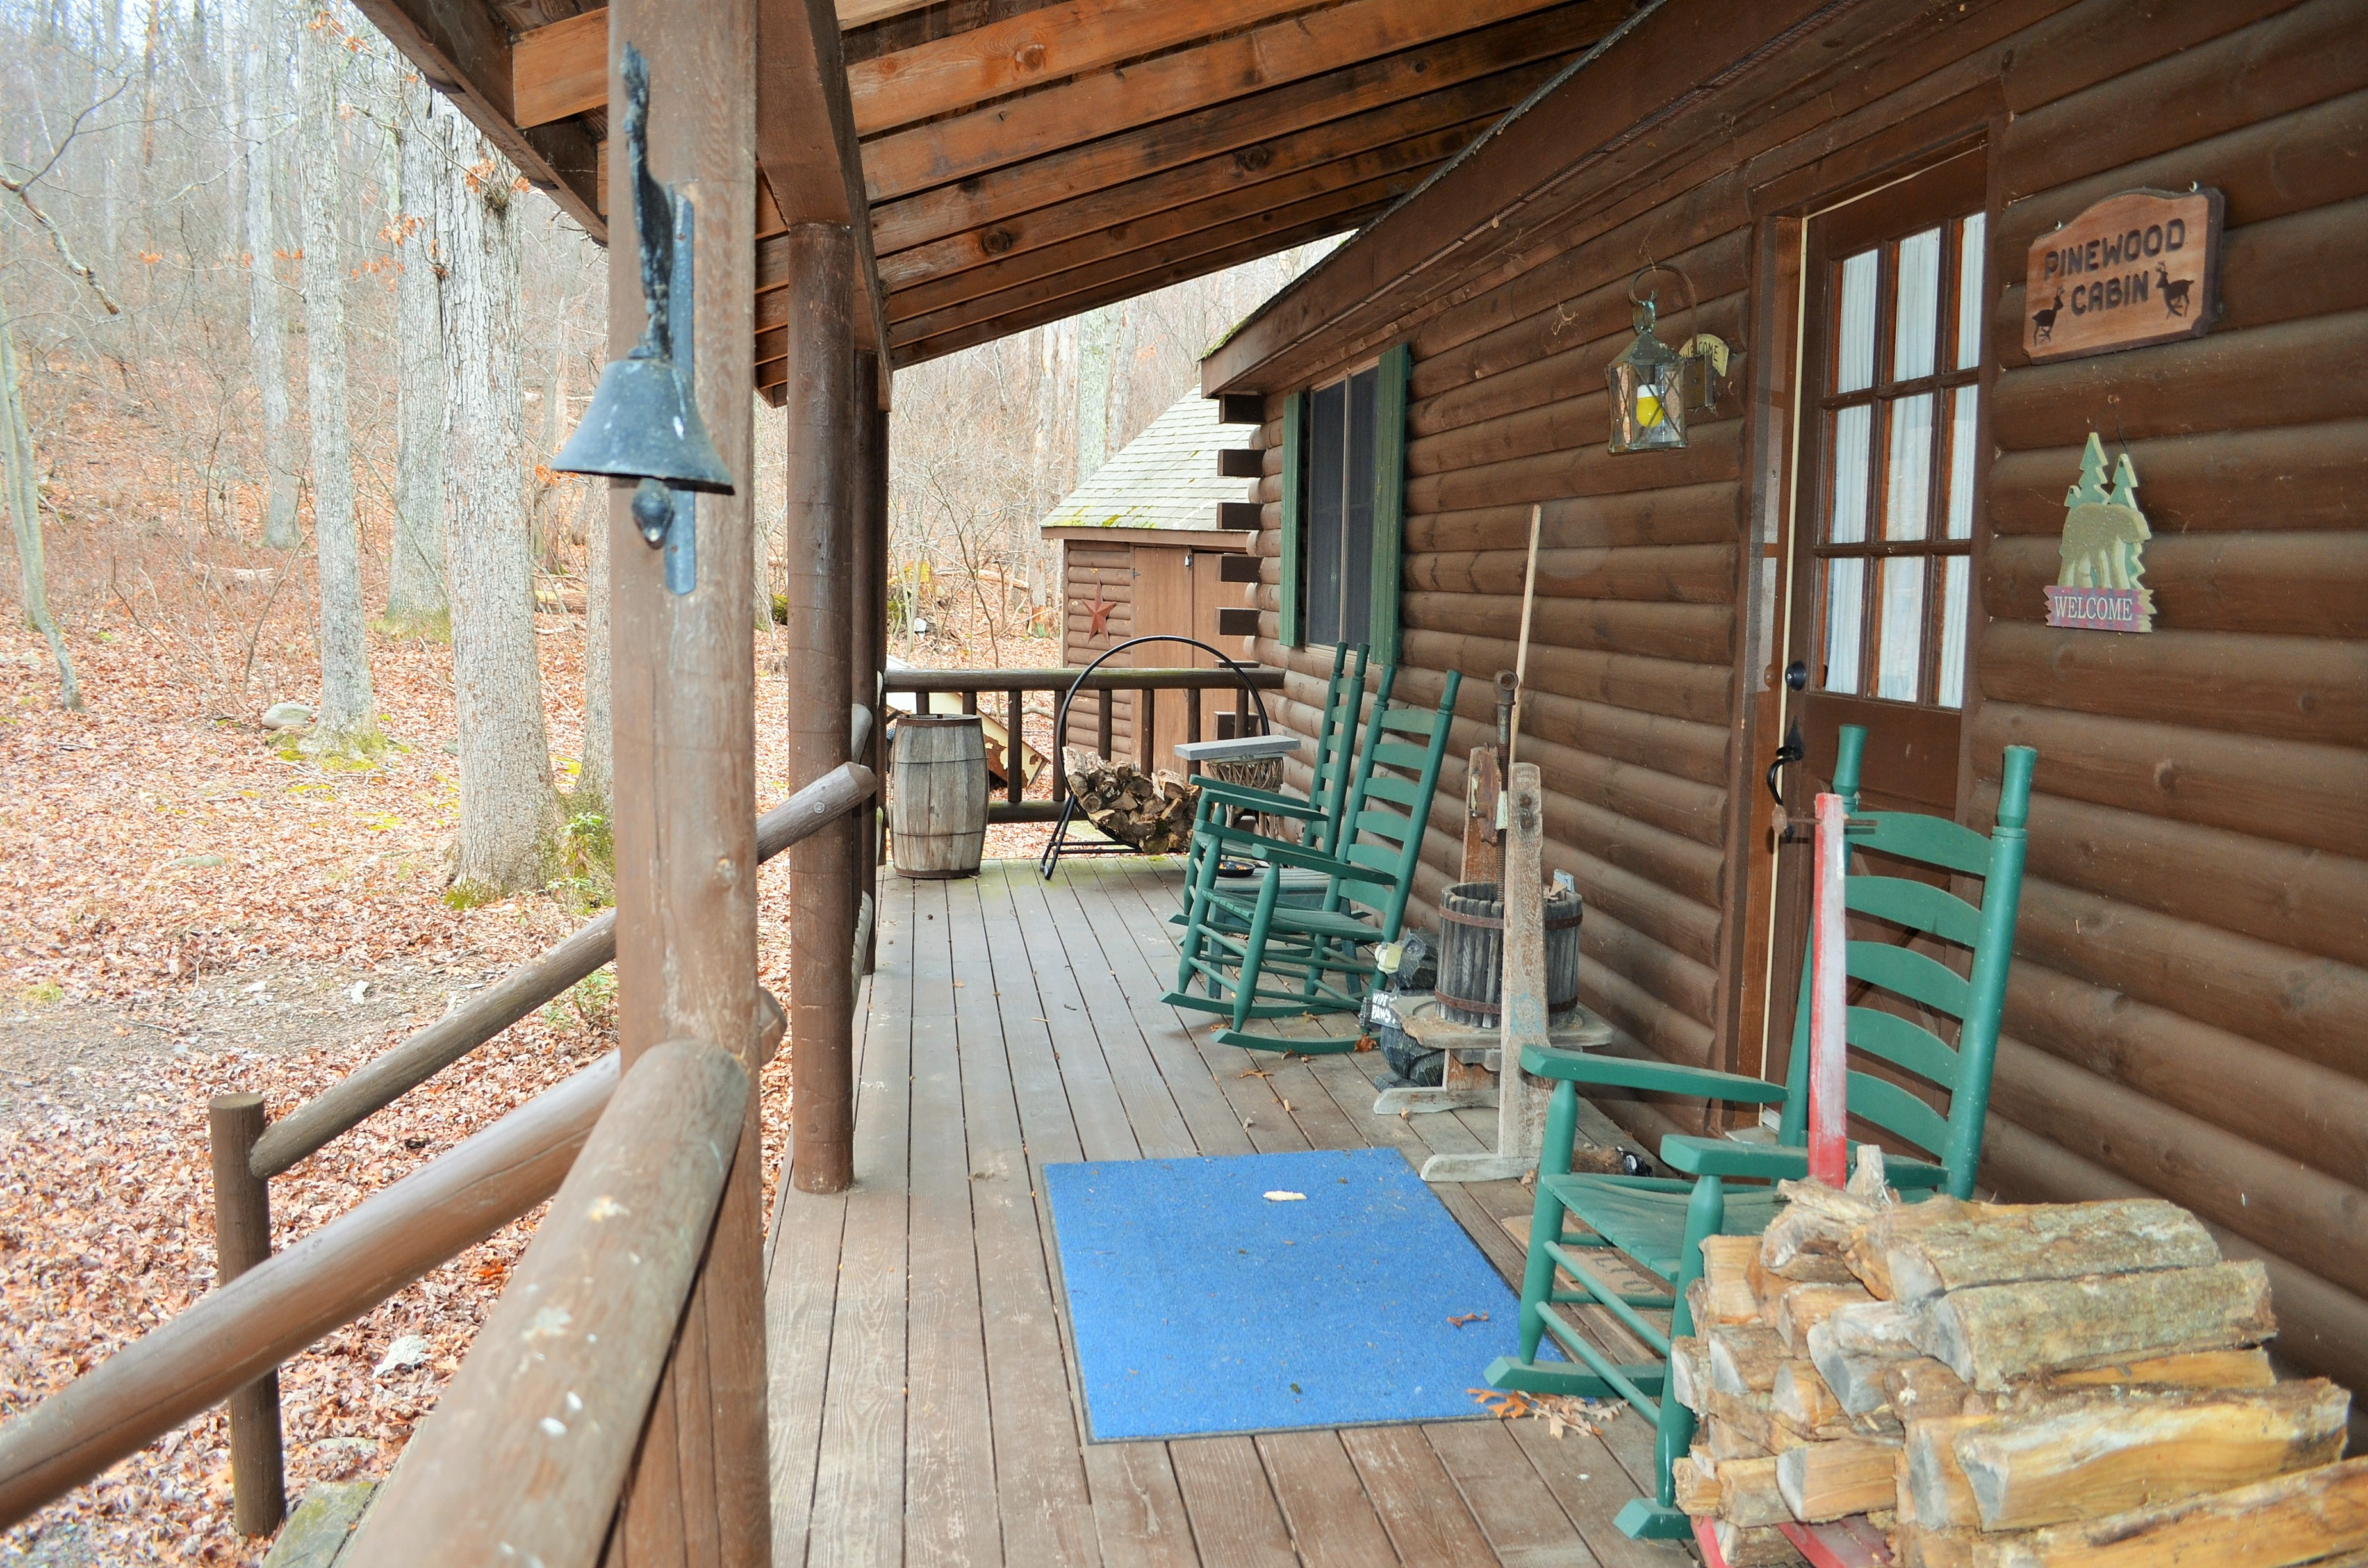 rentals pocono jacuzzi sale for in with cabins owner poconos pennsylvania hunting indoor by groups rent cabin